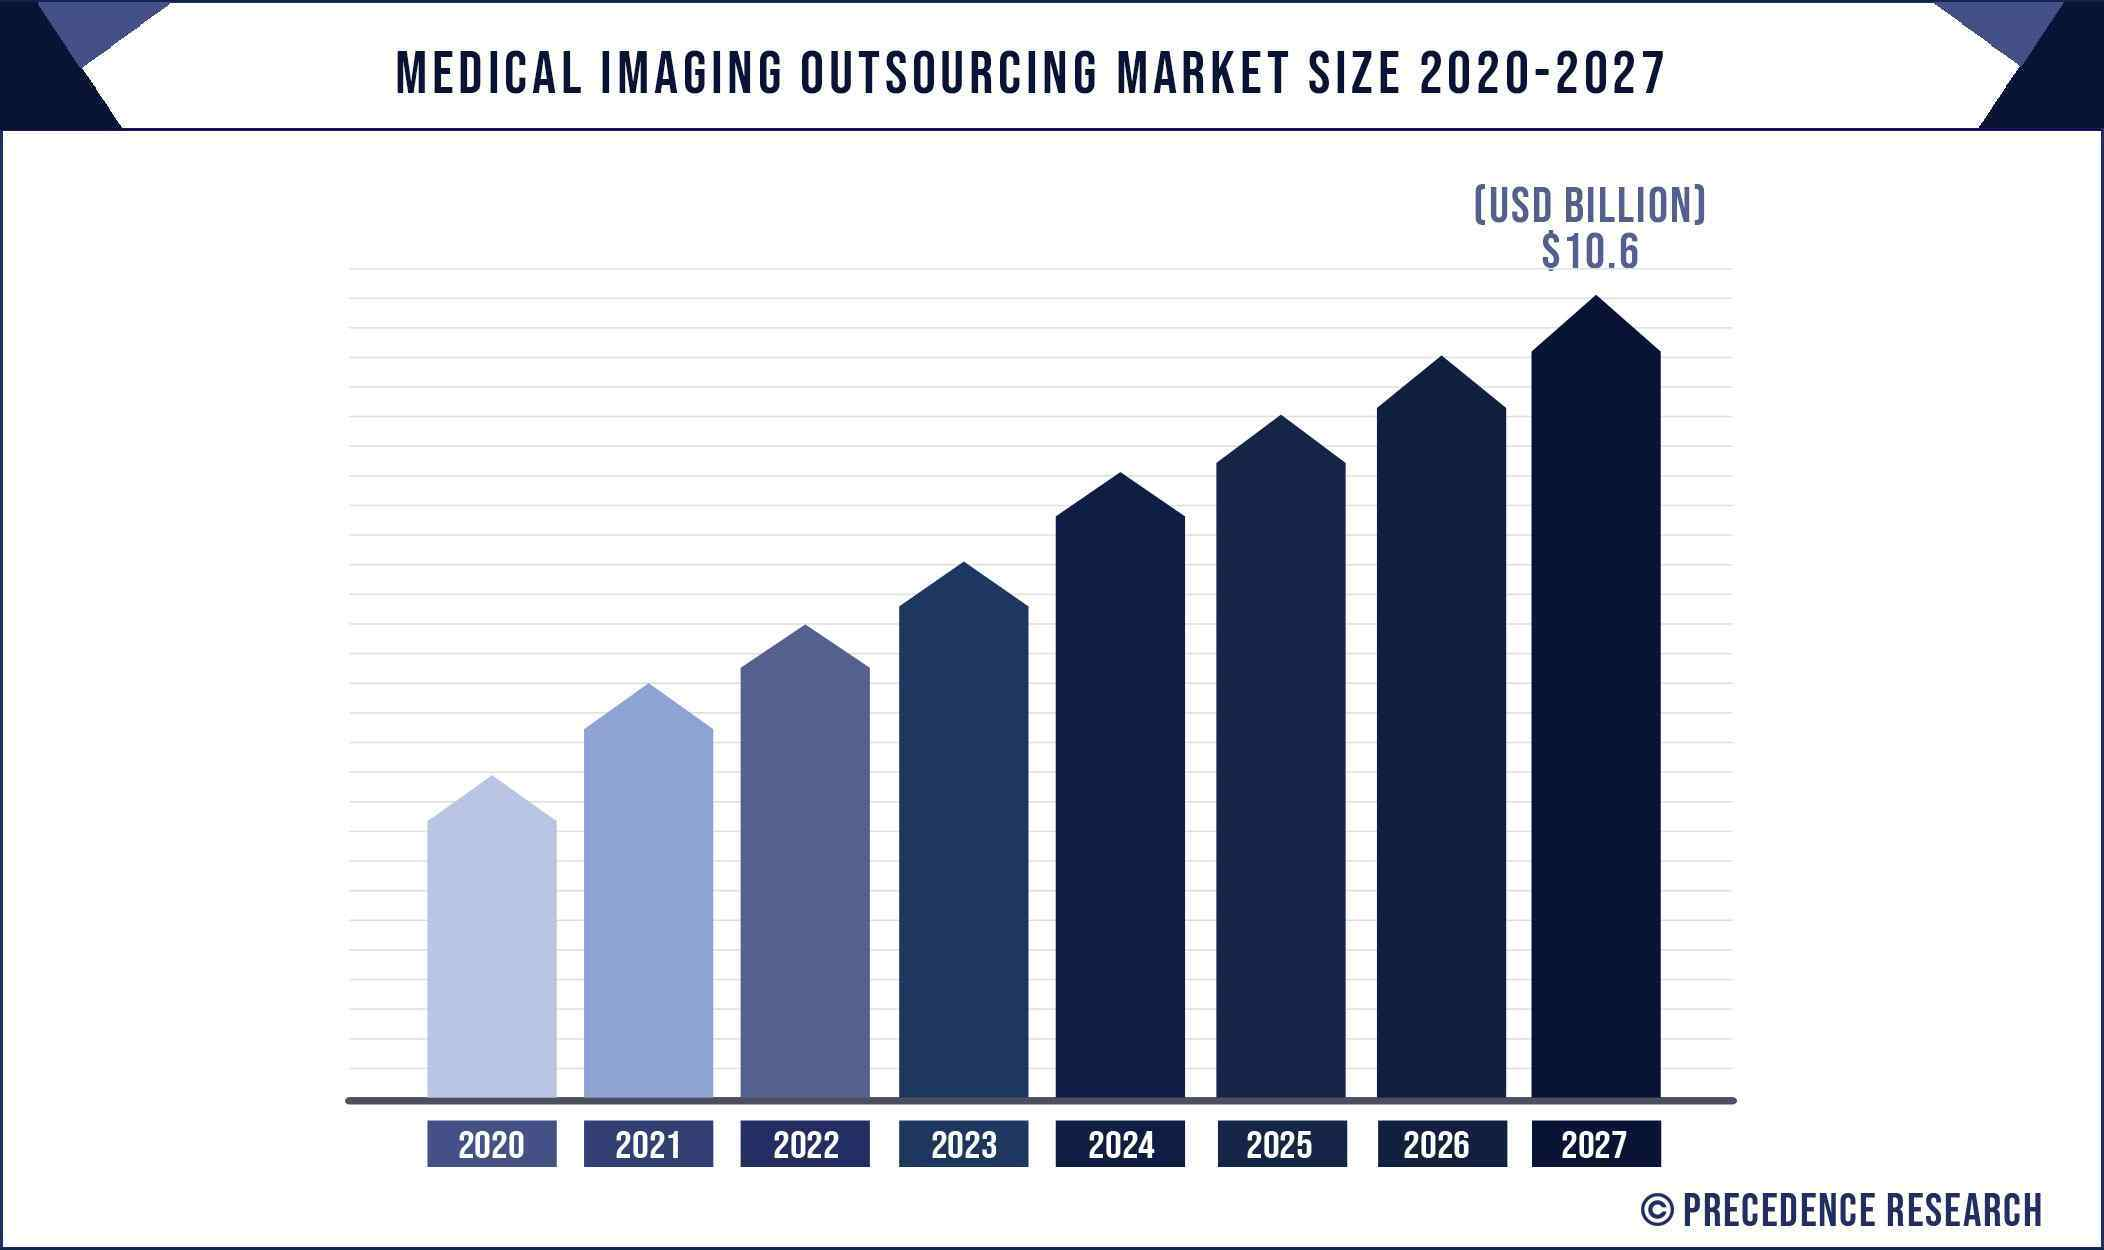 Medical Imaging Outsourcing Market Size 2020 to 2027